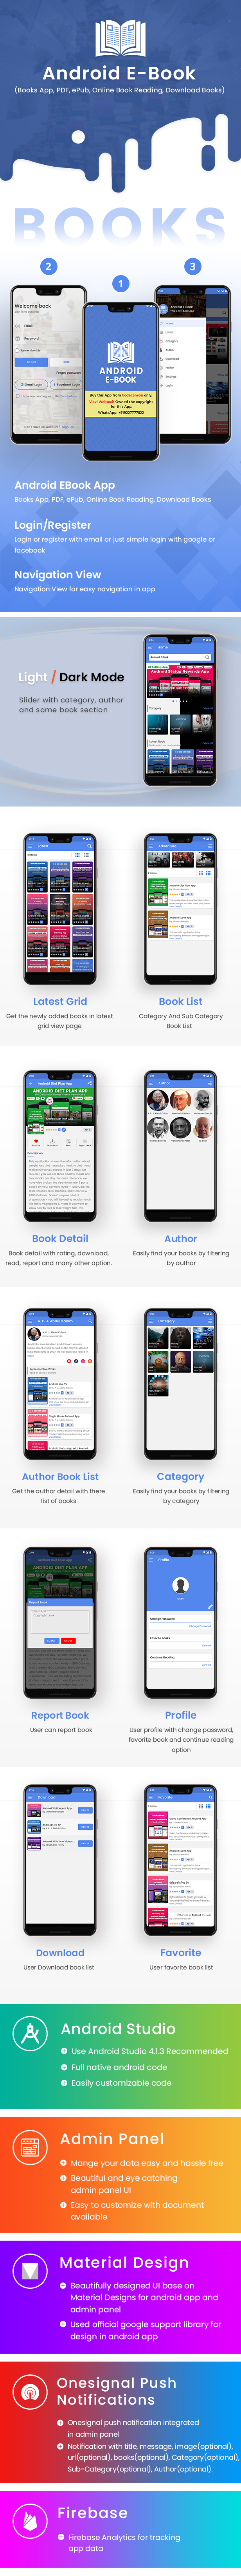 Android EBook App with Material Design